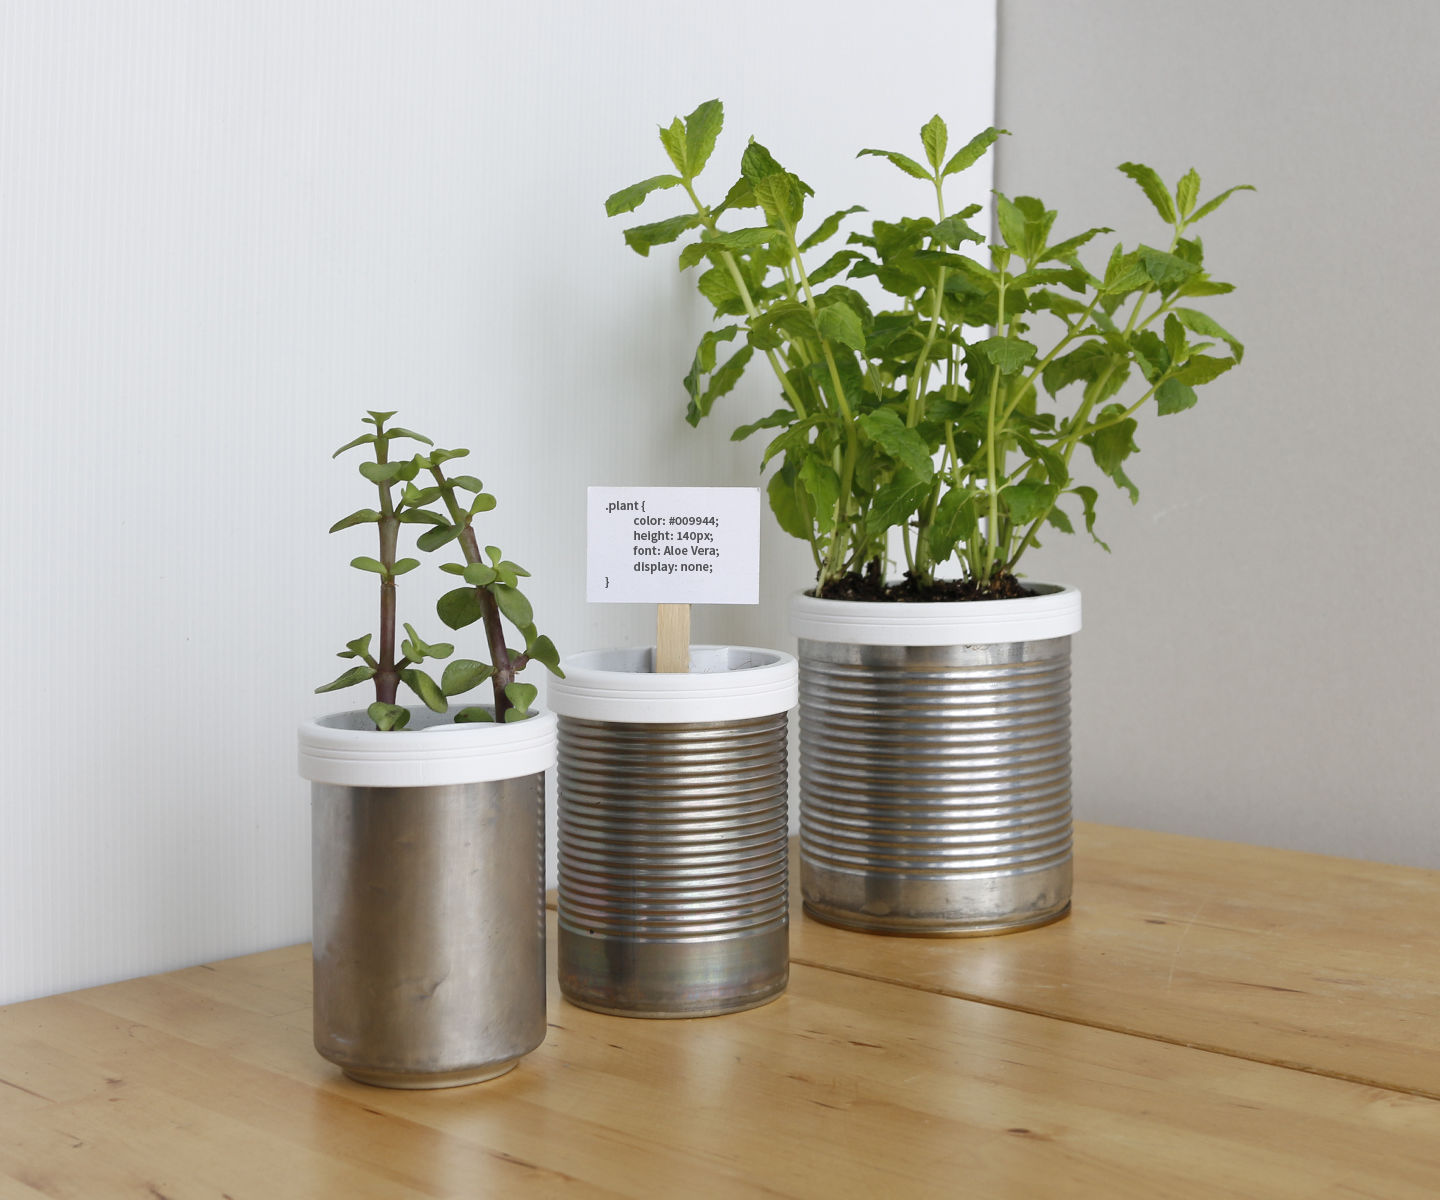 Campbell Planter - Fully 3D Printed Self-Watering Planter